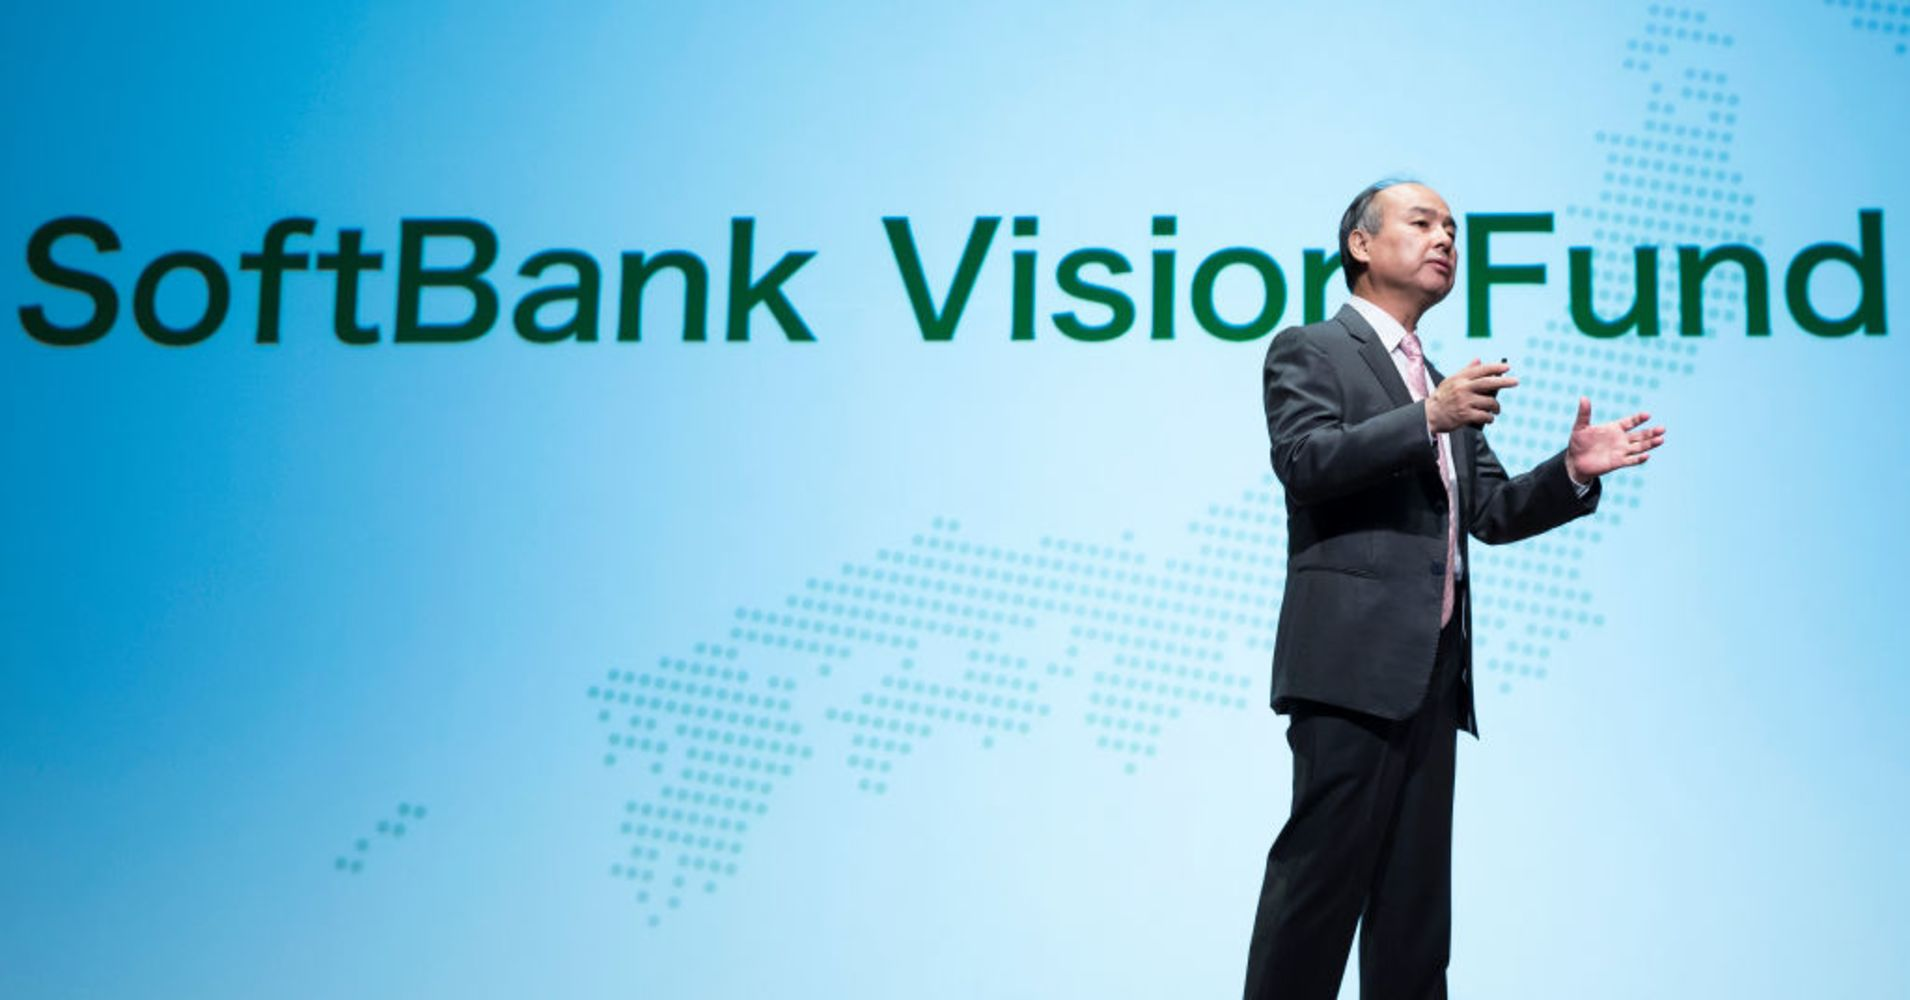 SoftBank Group Corp. Chairman and CEO Masayoshi Son speaks during a press conference on May 9, 2018 in Tokyo, Japan.